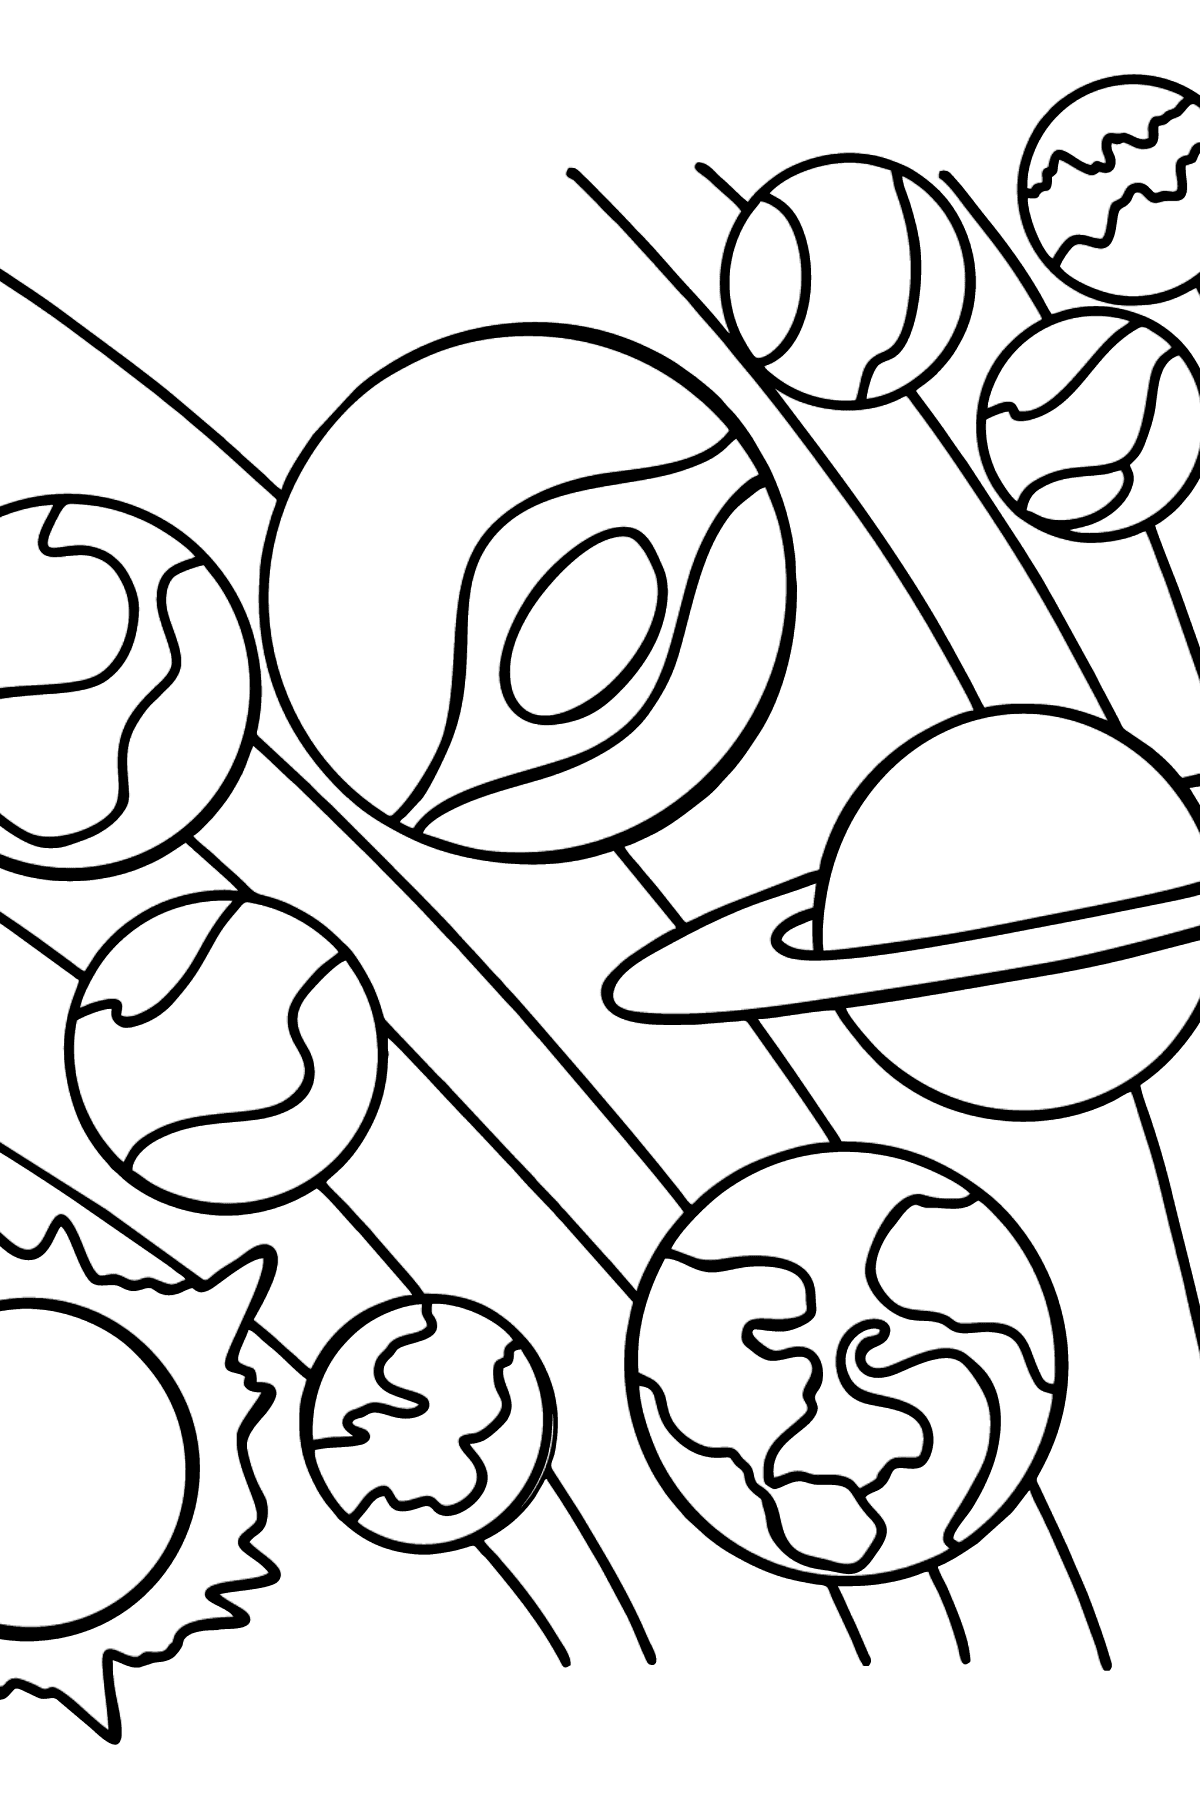 Solar System Coloring Page for kids - Coloring Pages for Kids